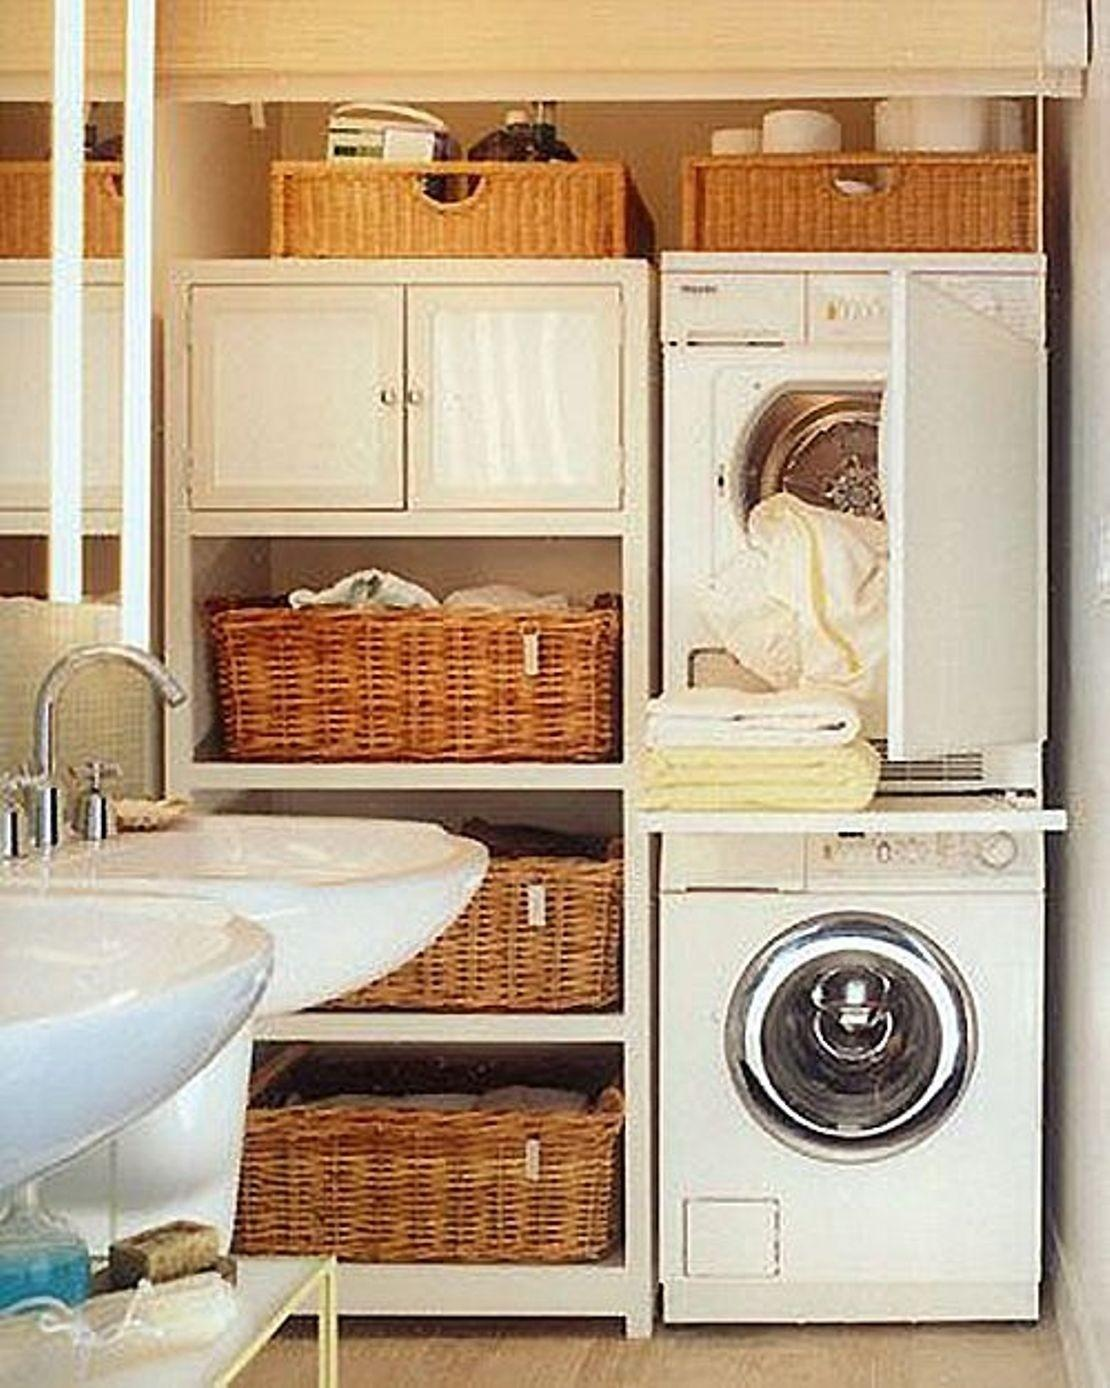 Laundry Room Shelf Basket Shelves